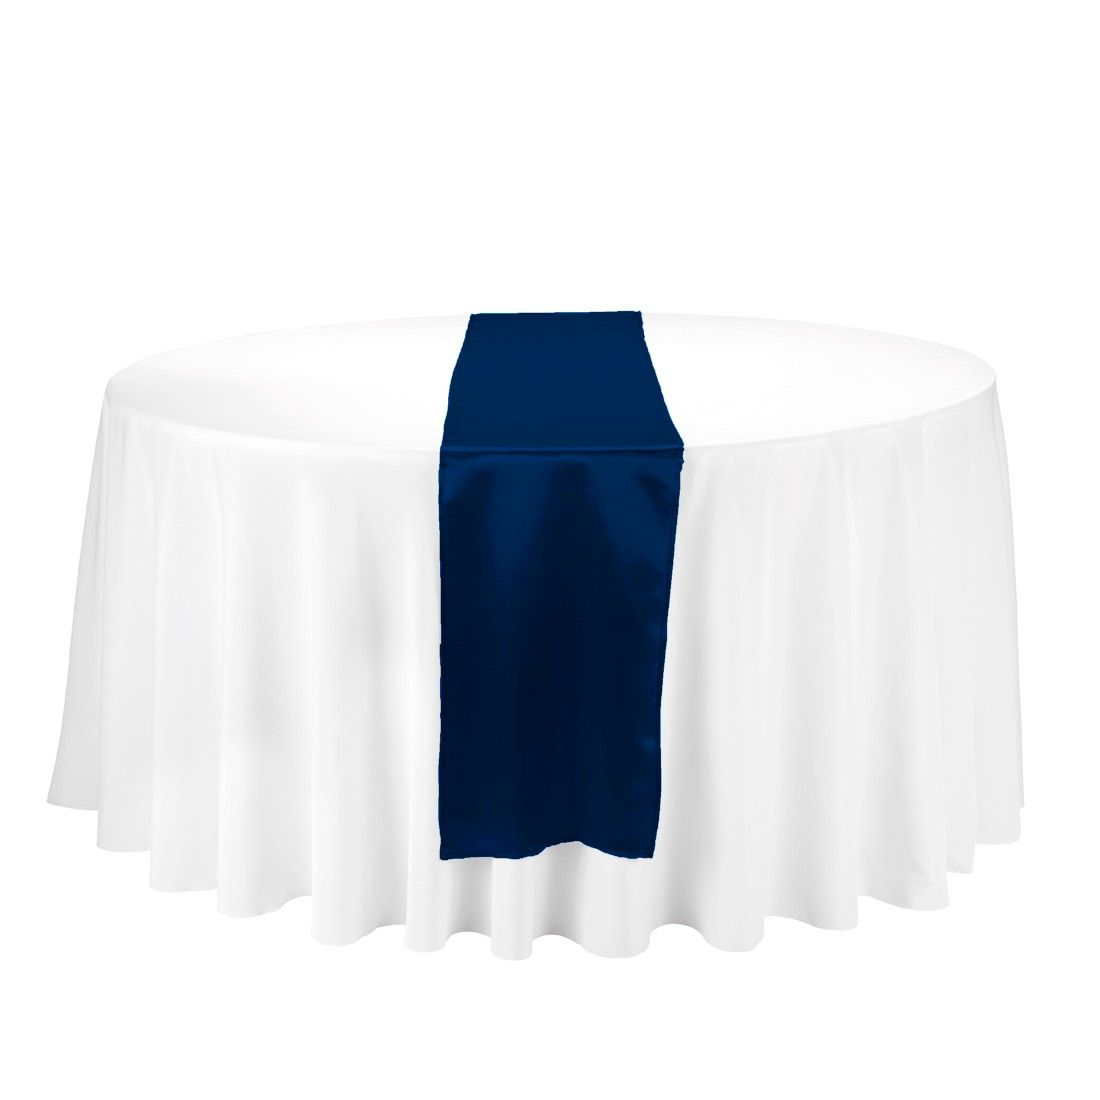 Satin Table Runner Navy Blue Linentablecloth.com Less Than $1